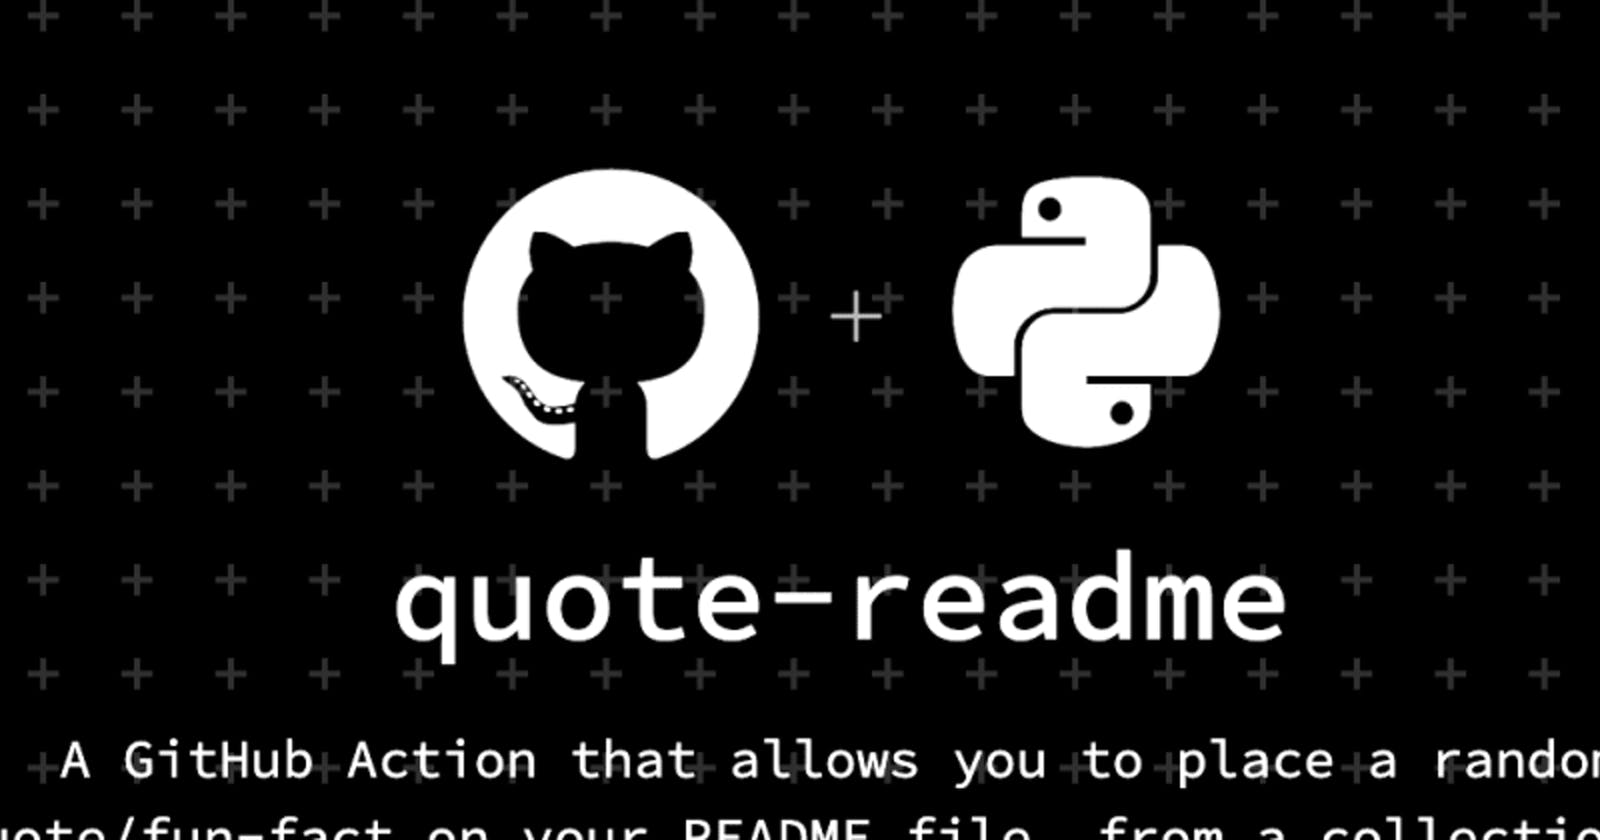 Yet another GitHub Action !